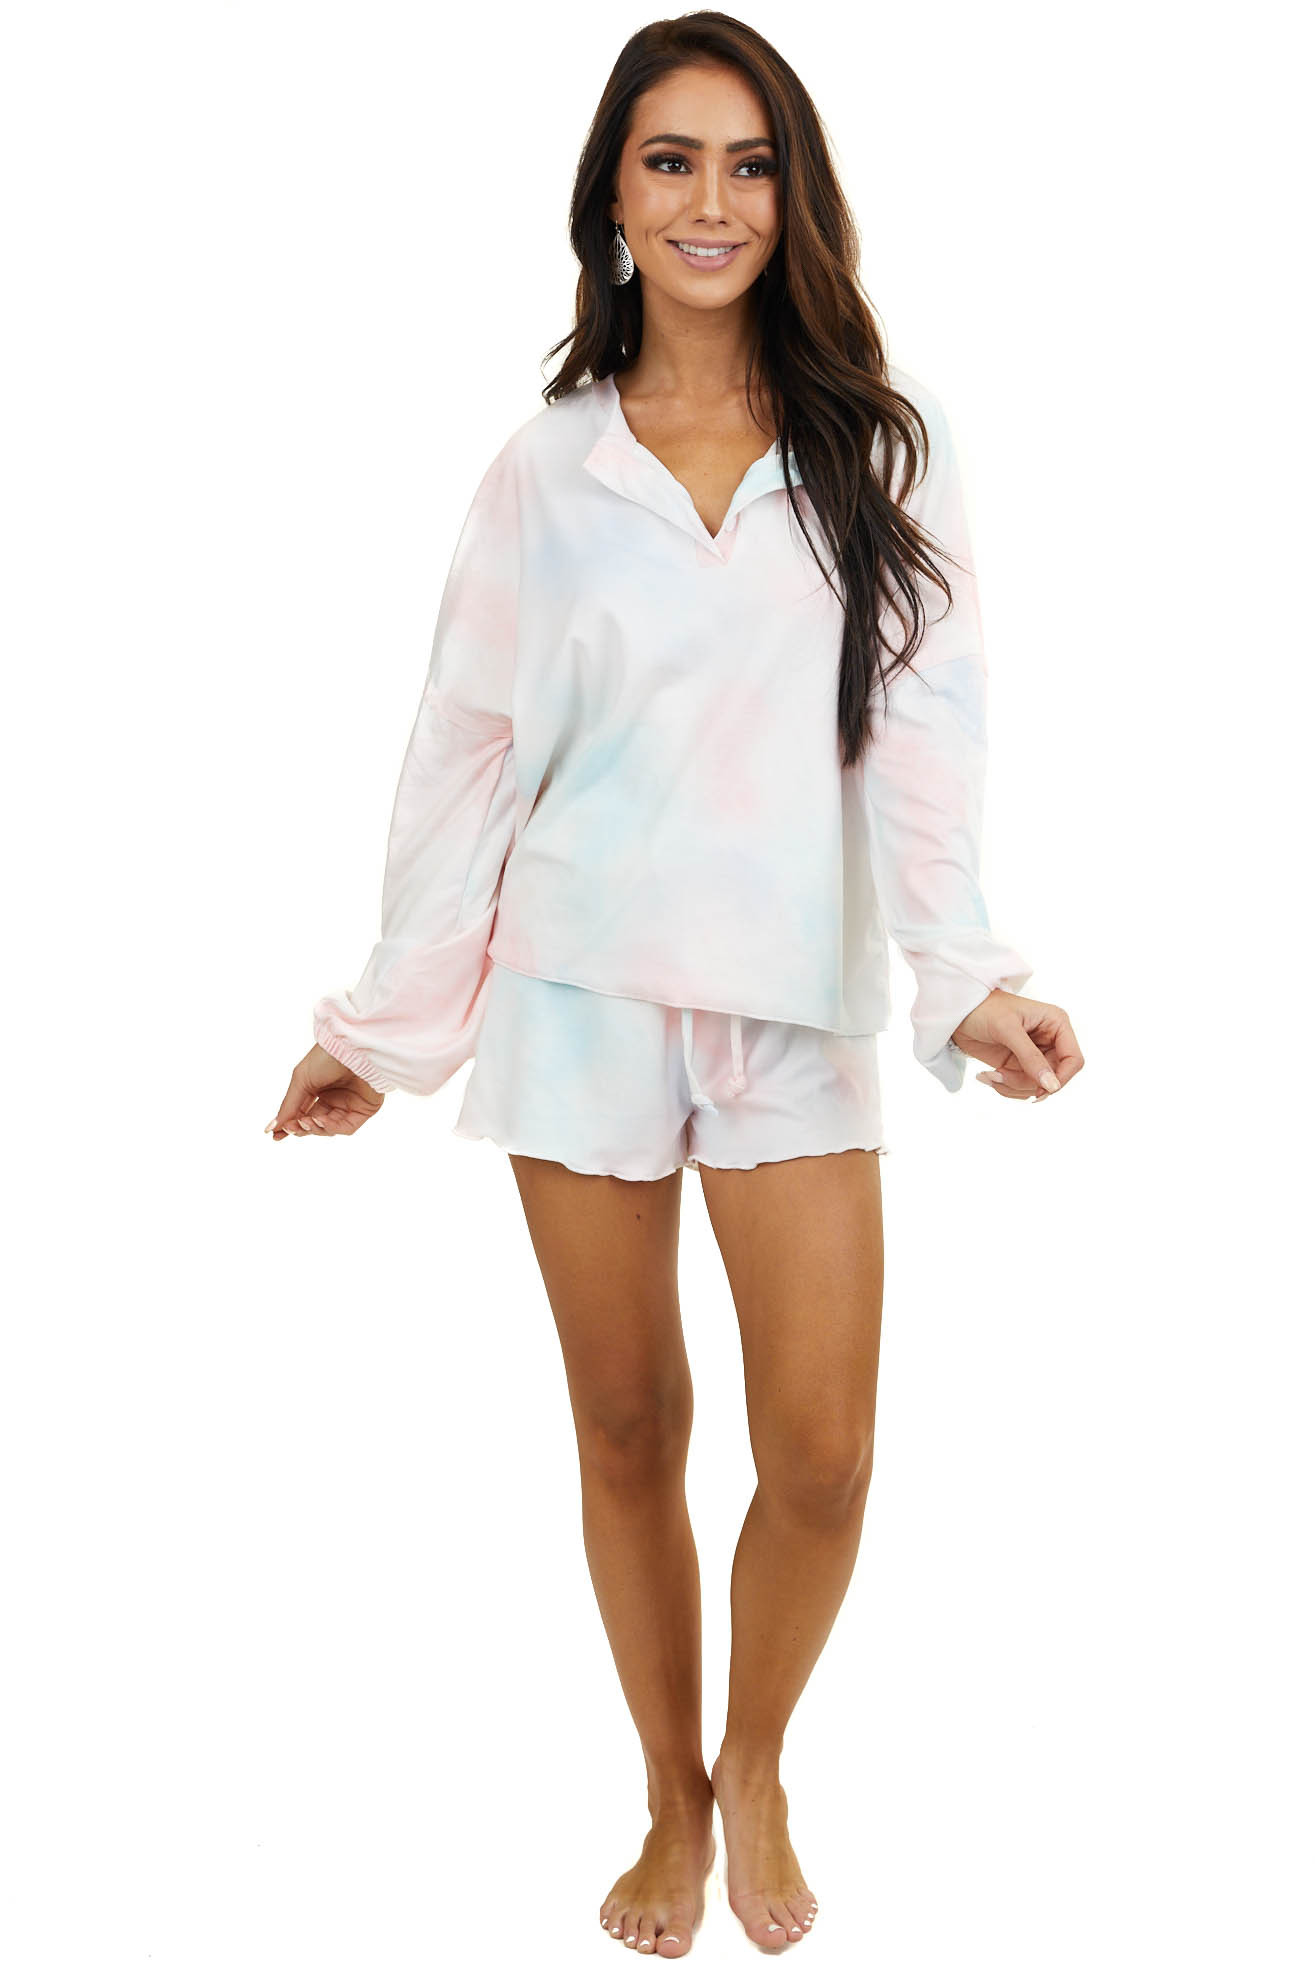 Pale Multicolor Tie Dye Top and Shorts Loungewear Set